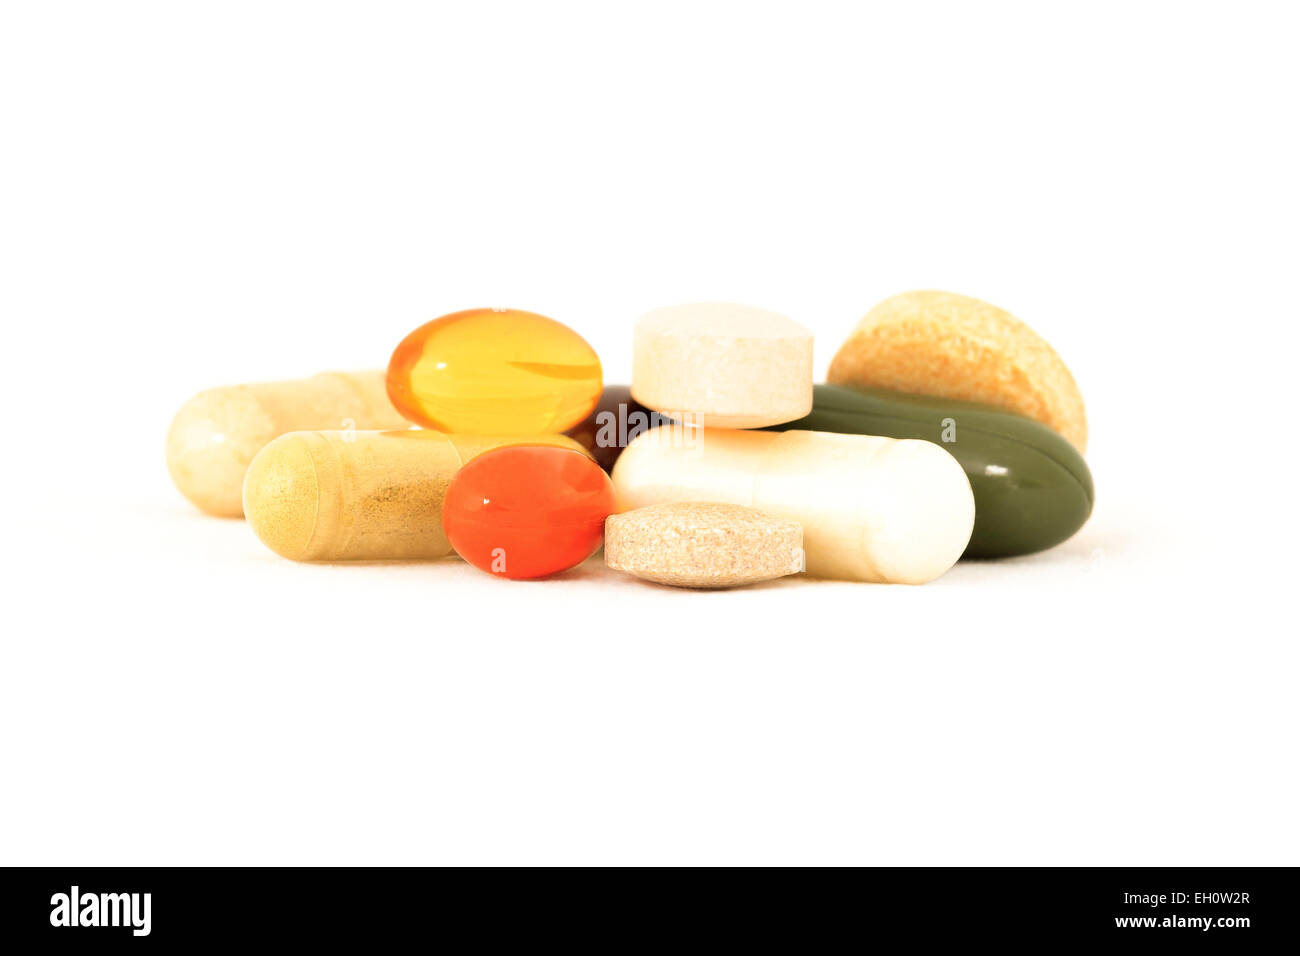 Various vitamins and herbal supplements on white background - Stock Image